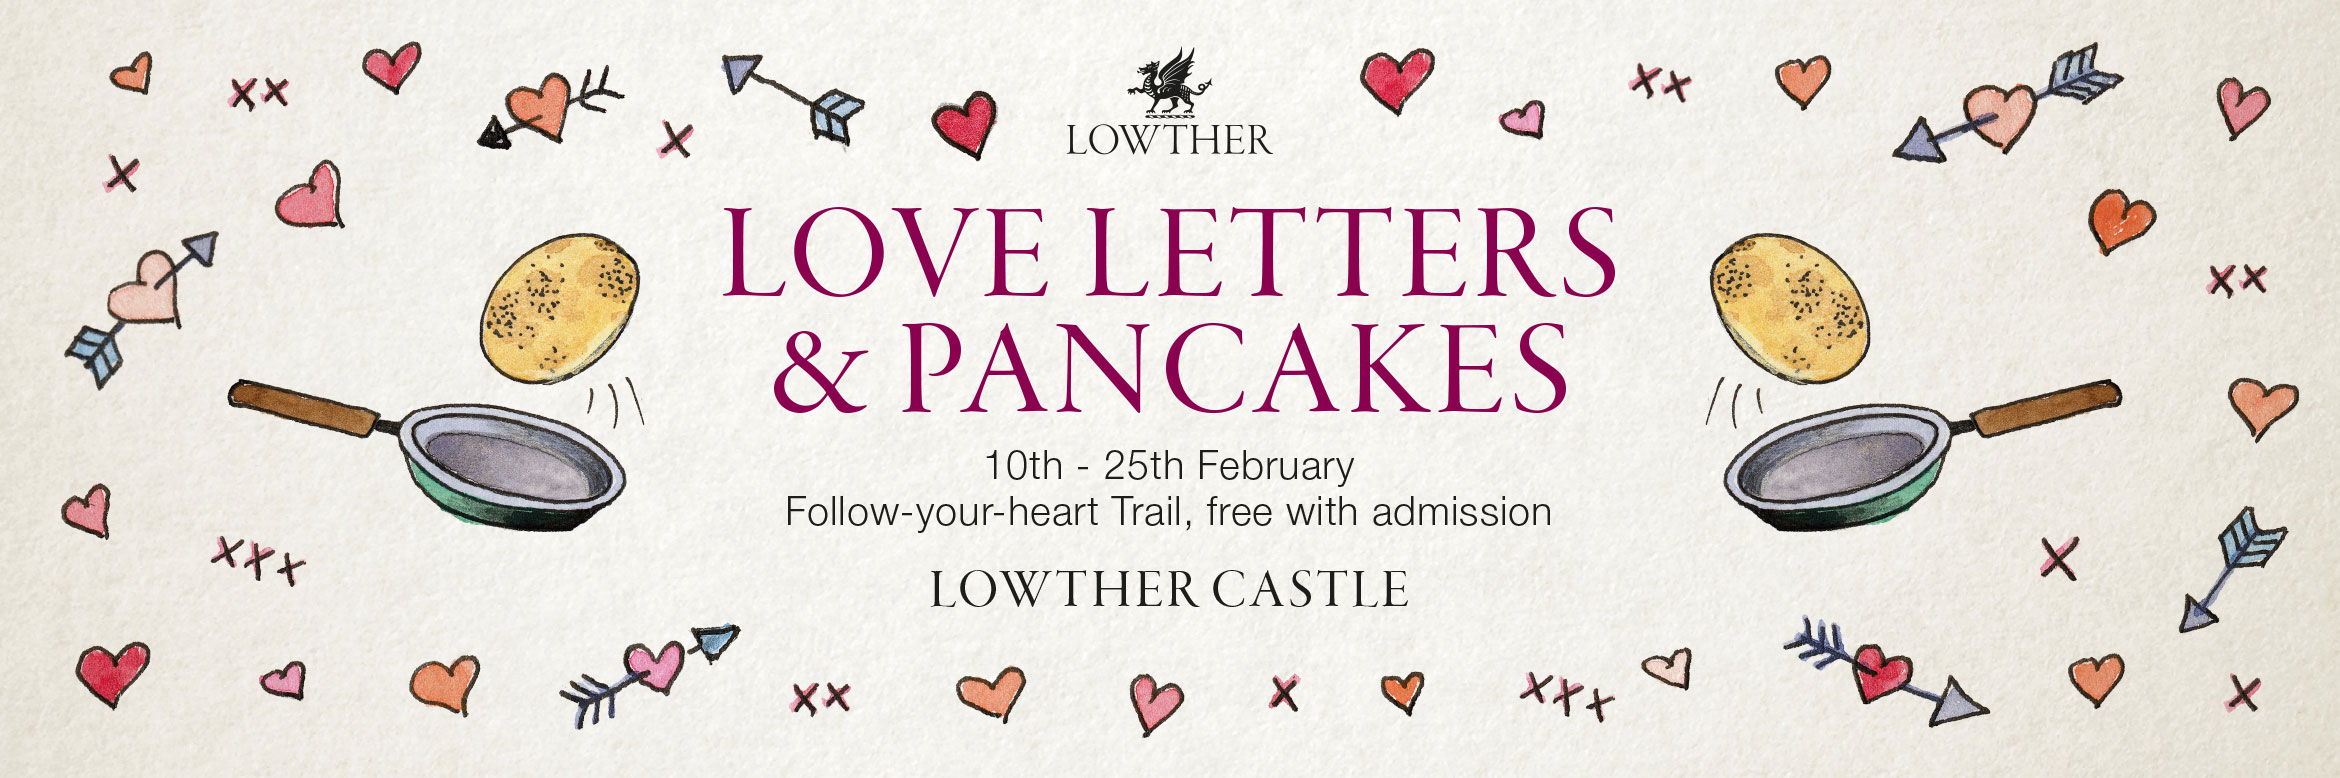 2340_Lowther_Love_Banner_01